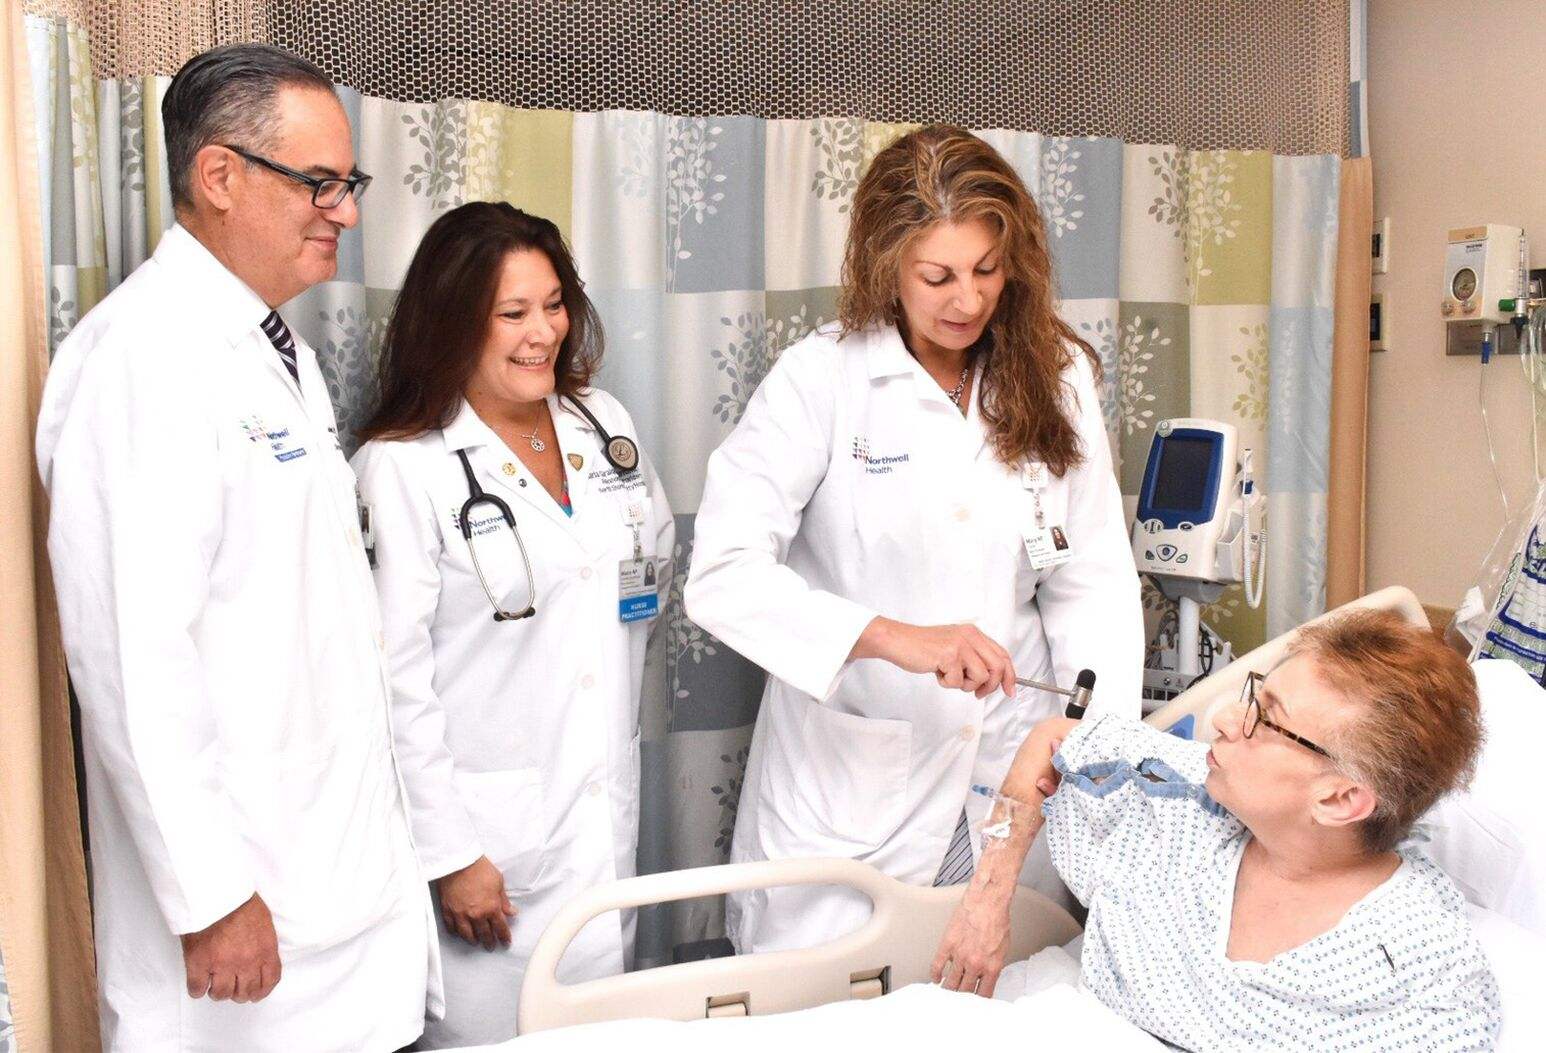 From left: Robert Duarte, MD; Maria Giraldo-Sorrentino, NP, and Mary Milano Carter, NP, conduct pain consultation with patient who received spine surgery.